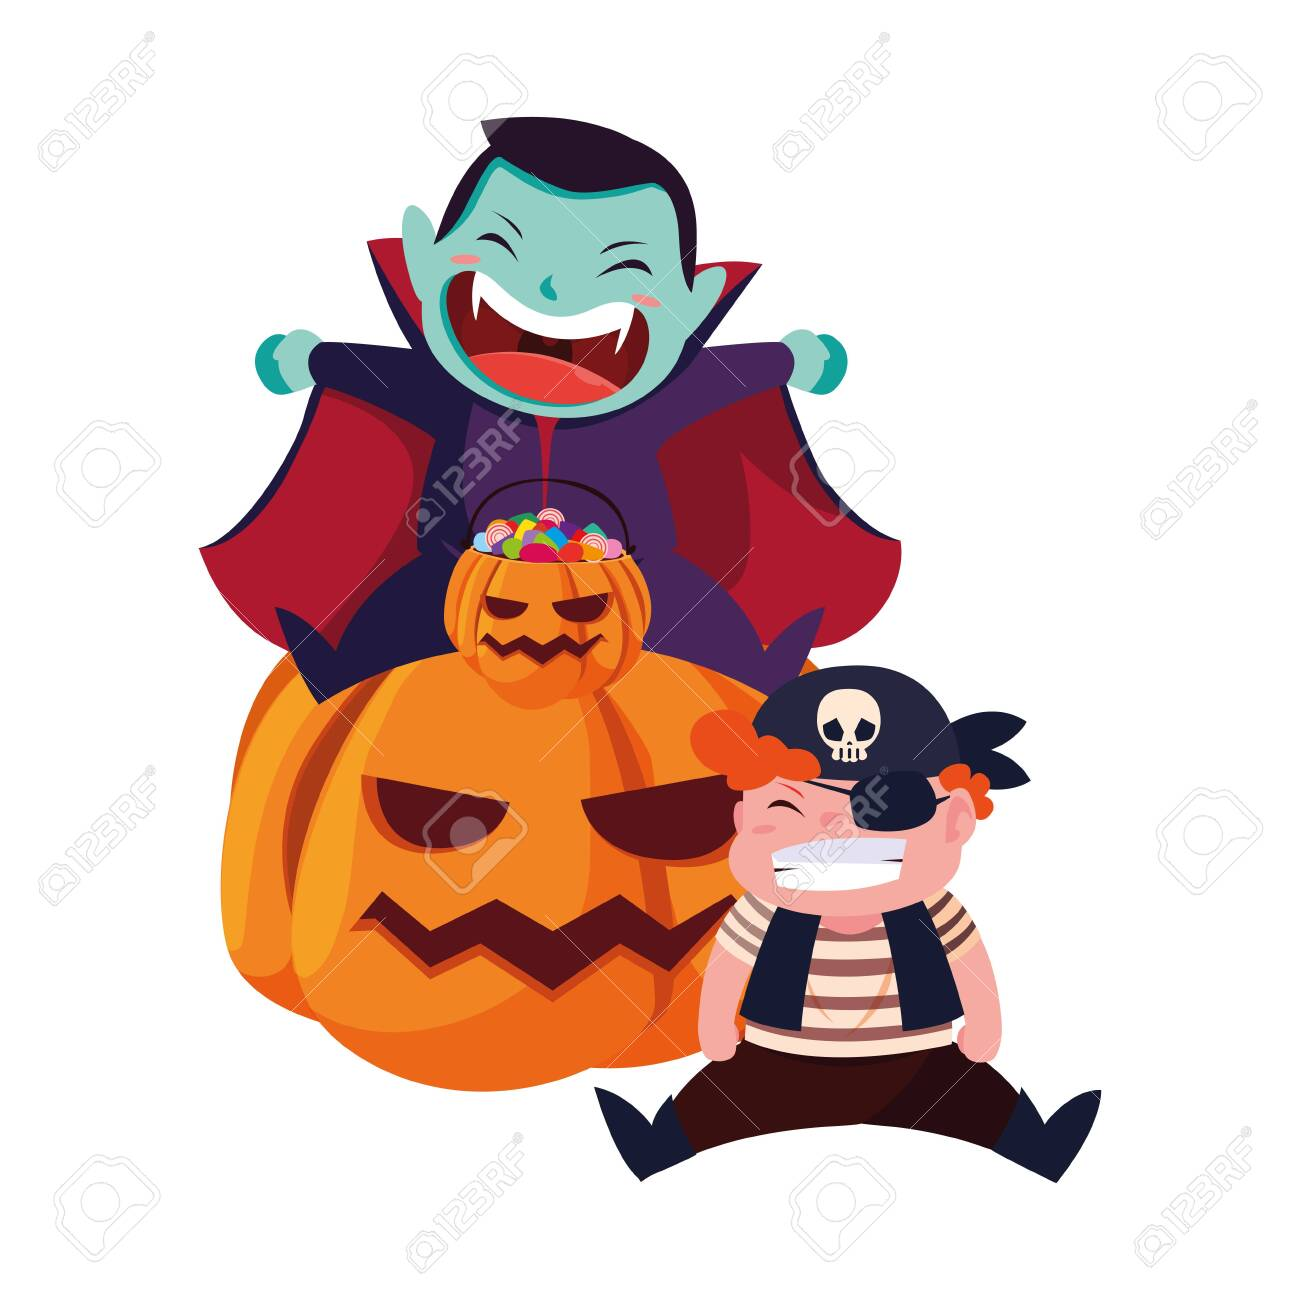 boys in Halloween pirate costume with pumpkins vector illustration - 154320903